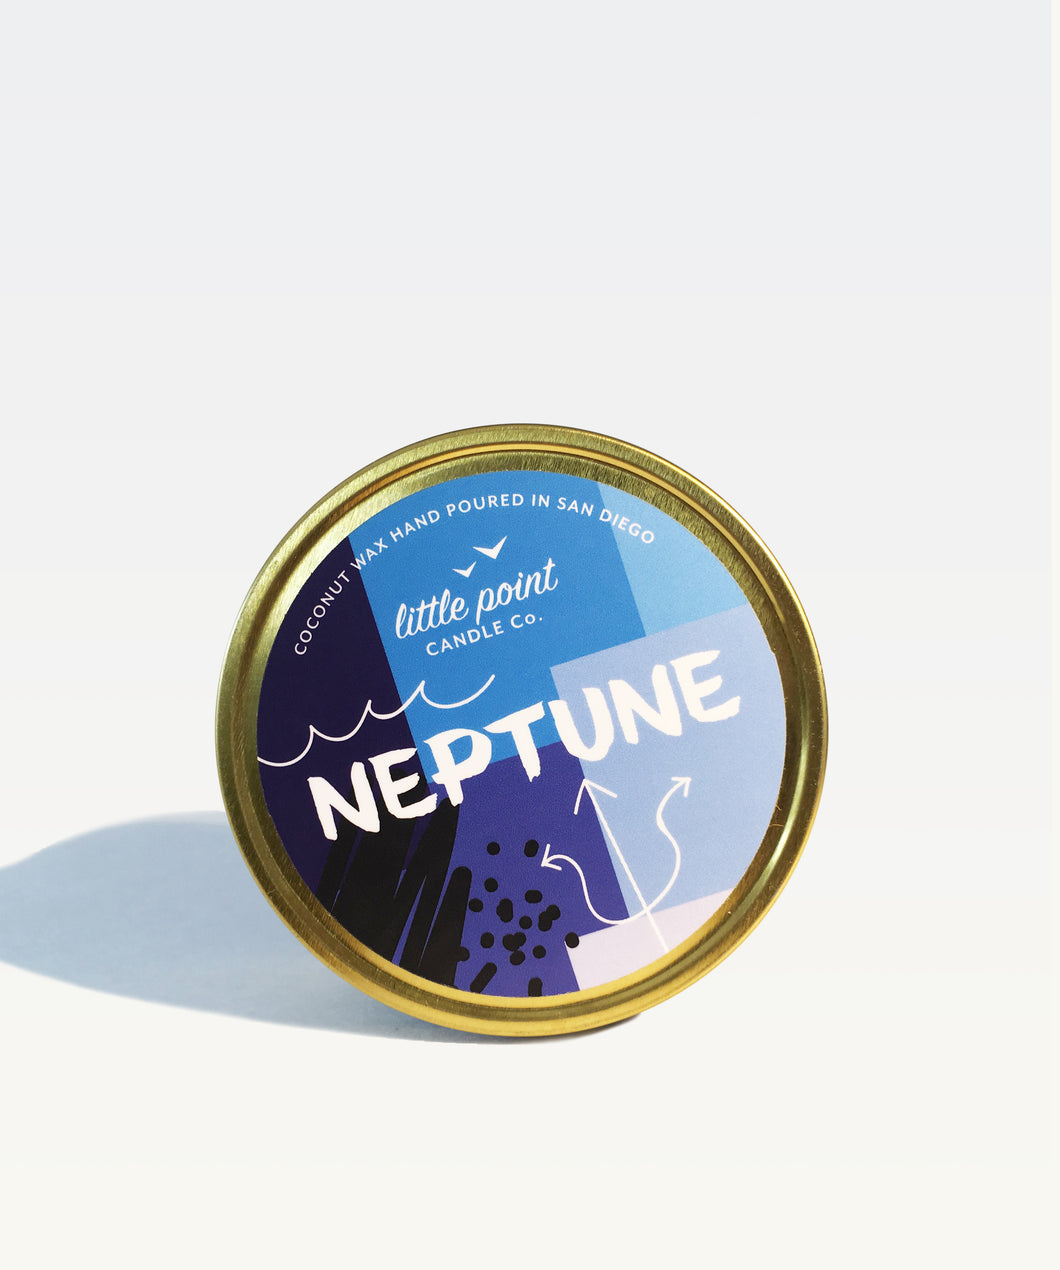 Neptune - Little Point Candle Company